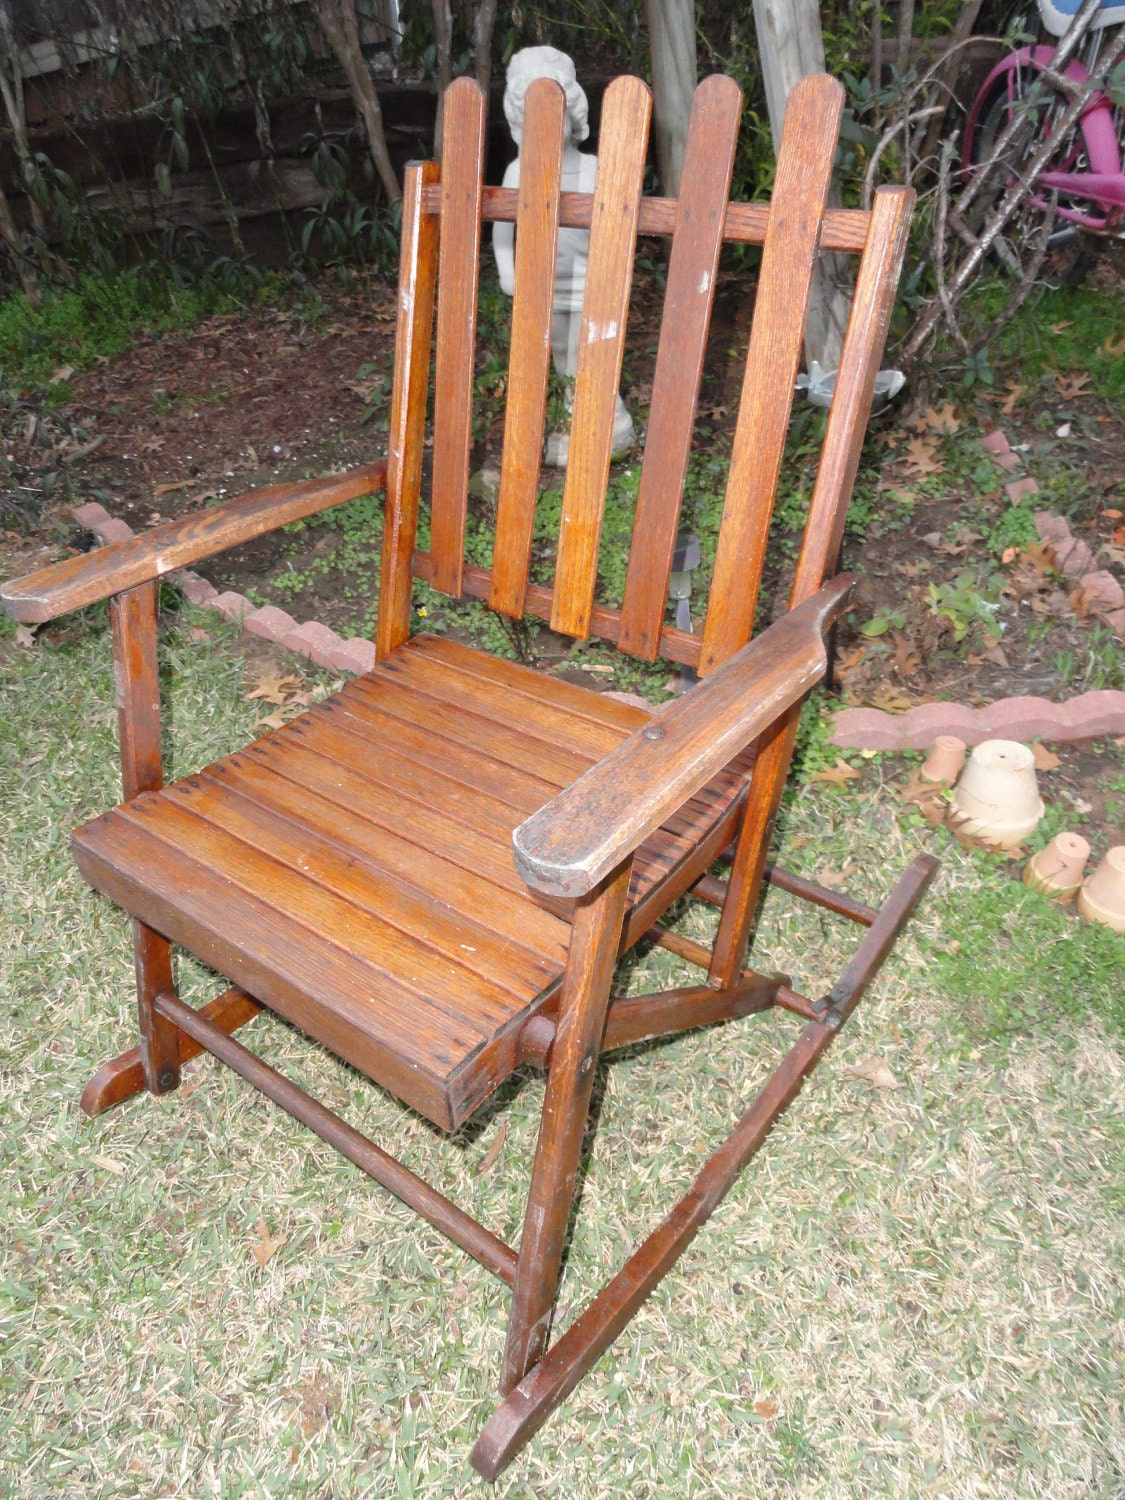 vintage rocking chair folding wood slats 1930s rustic lodge